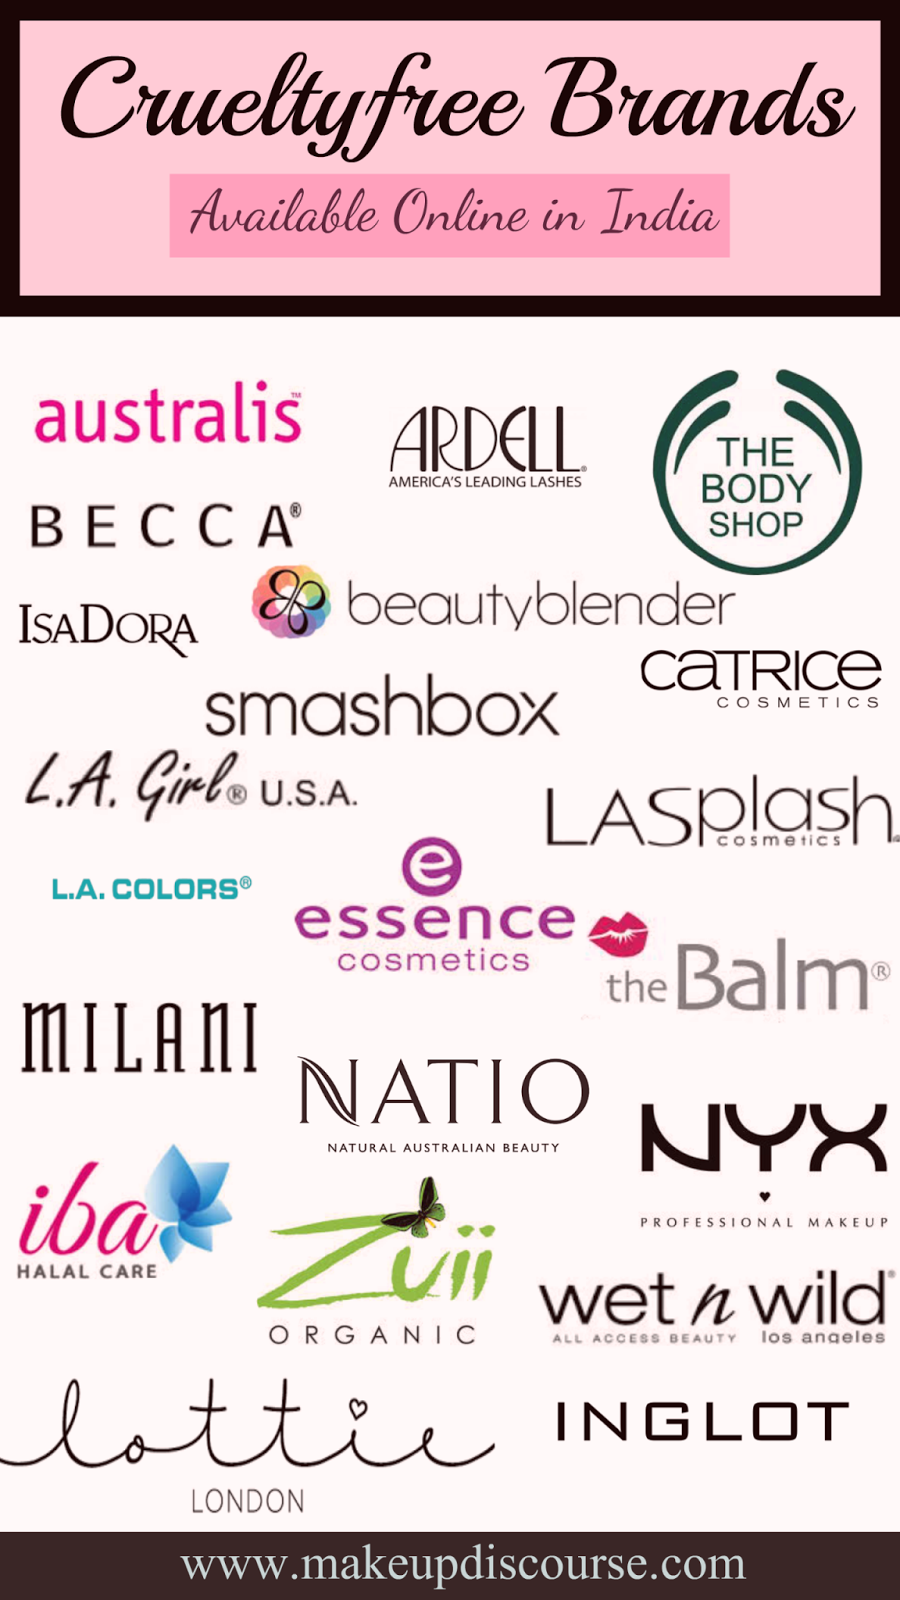 Crueltyfree brands available in India online